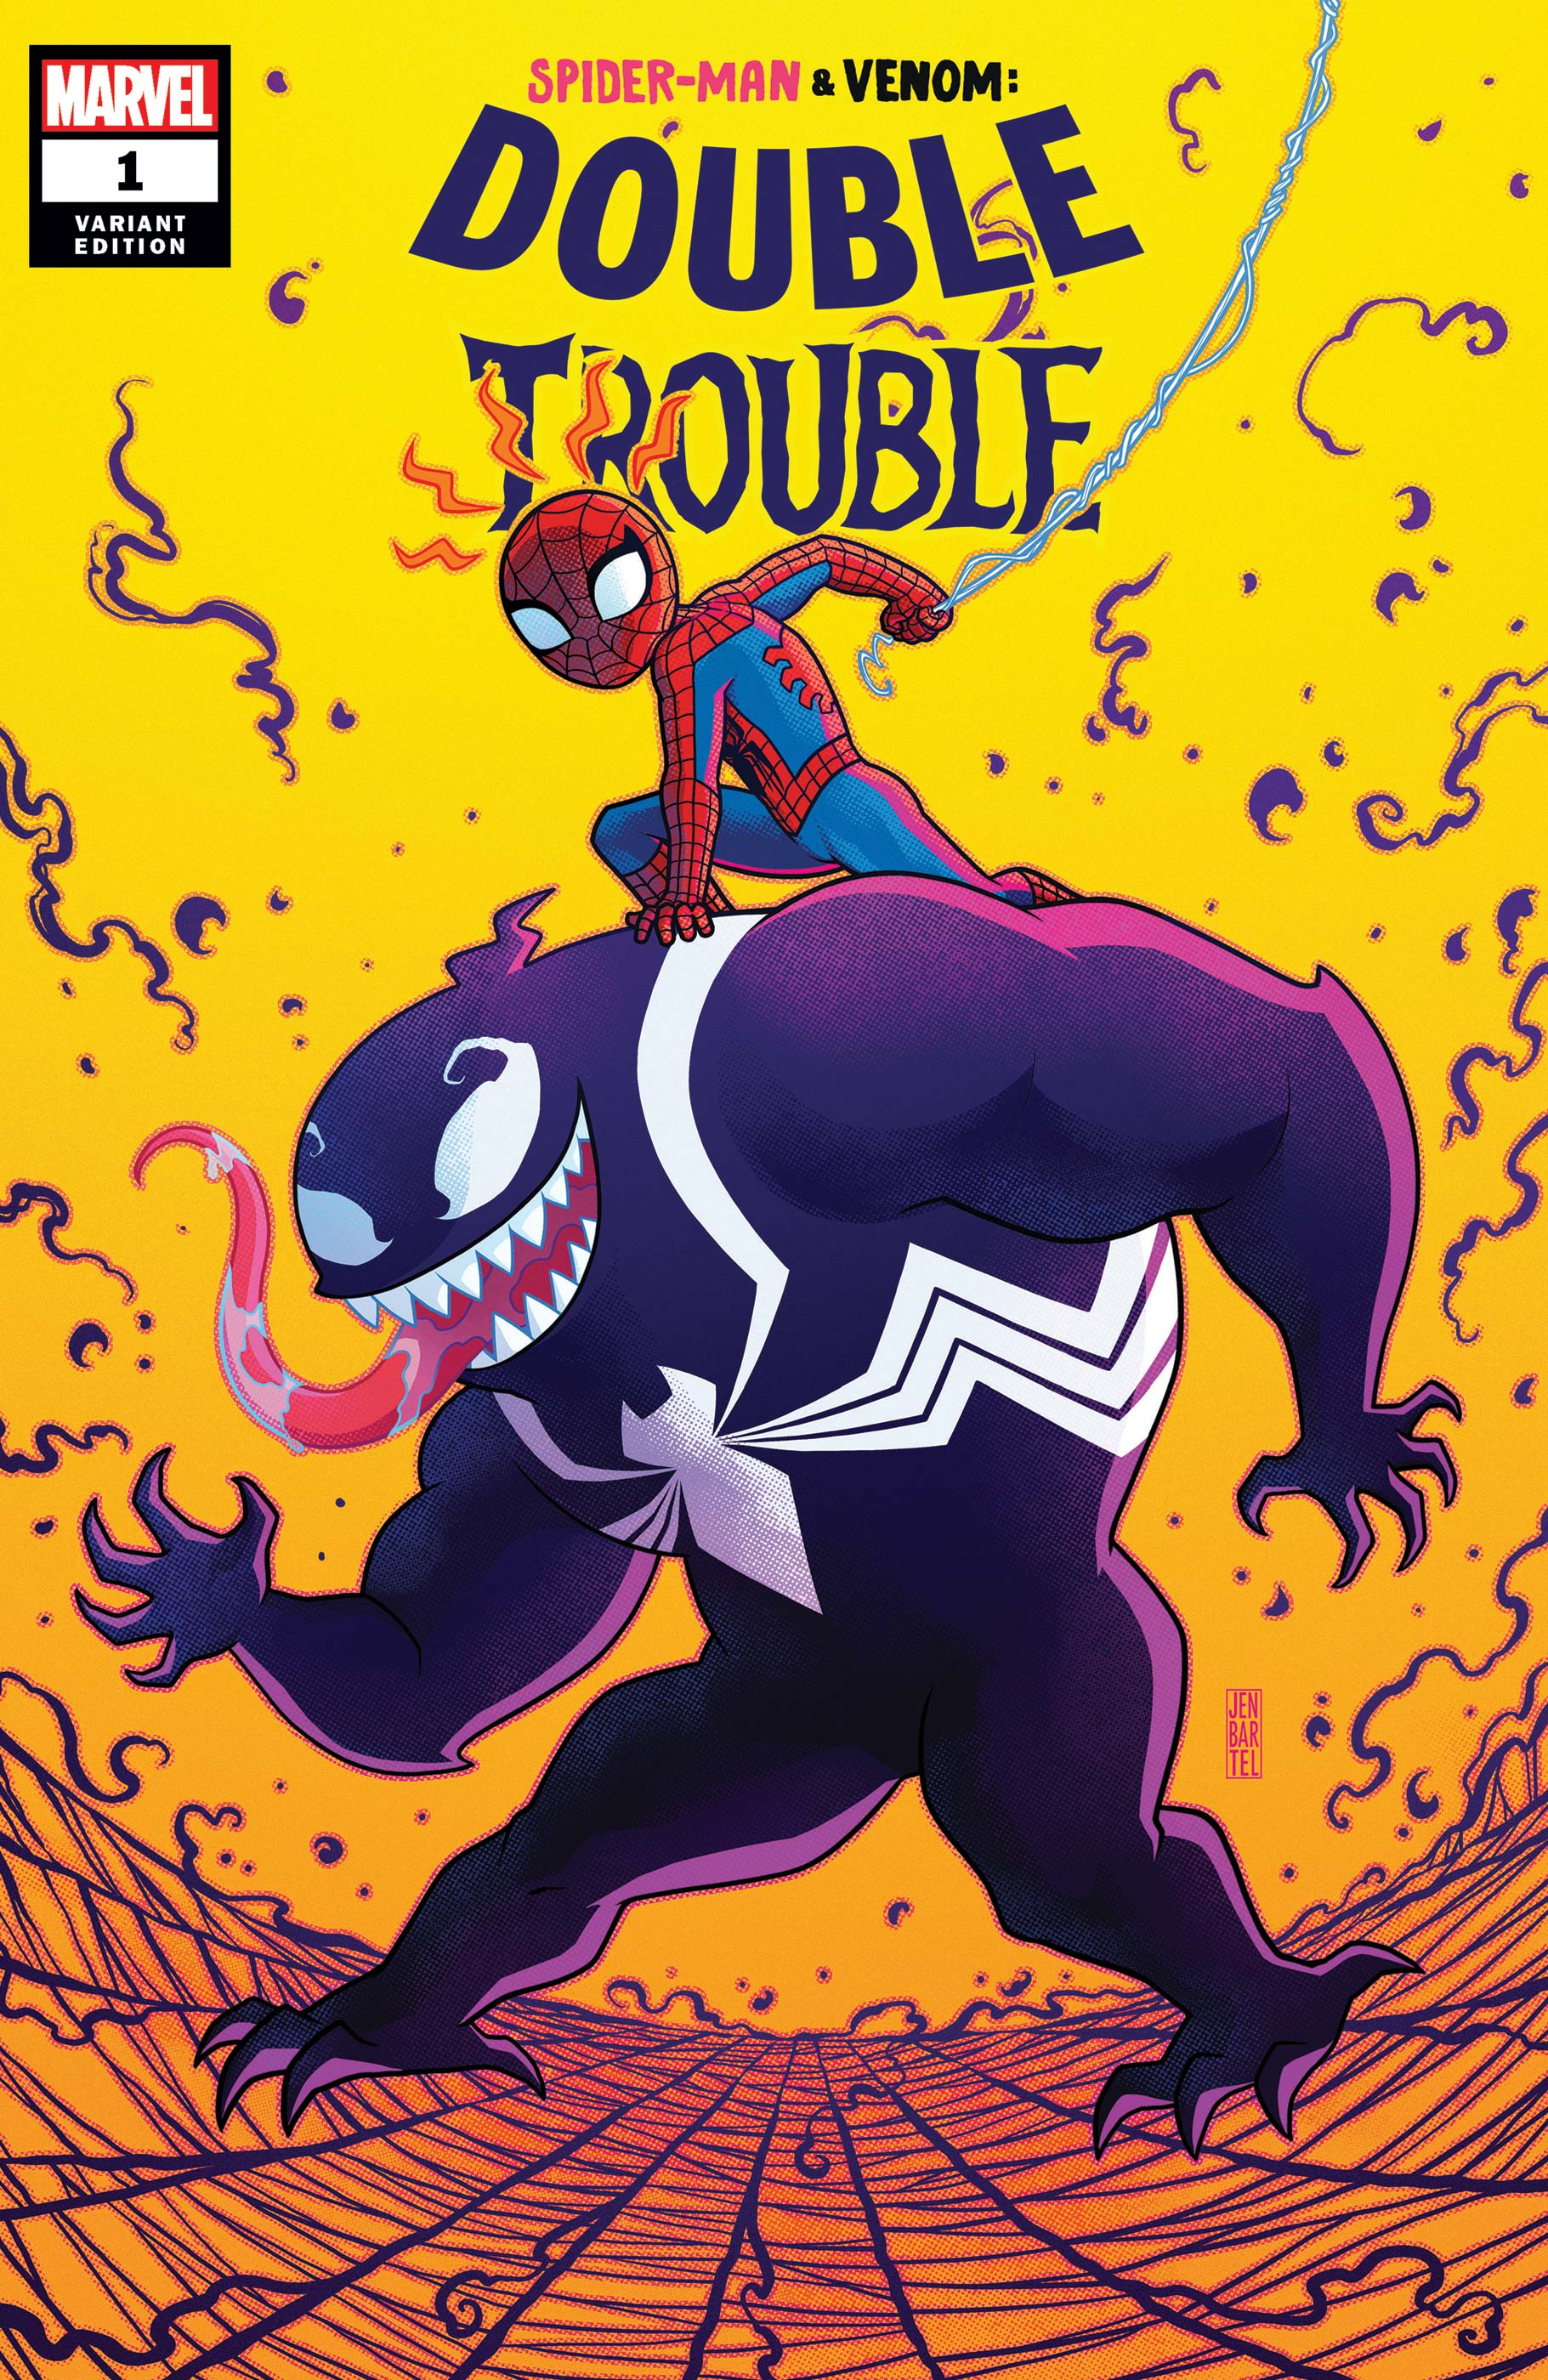 Spider-Man & Venom: Double Trouble (2019) #1 (Variant)